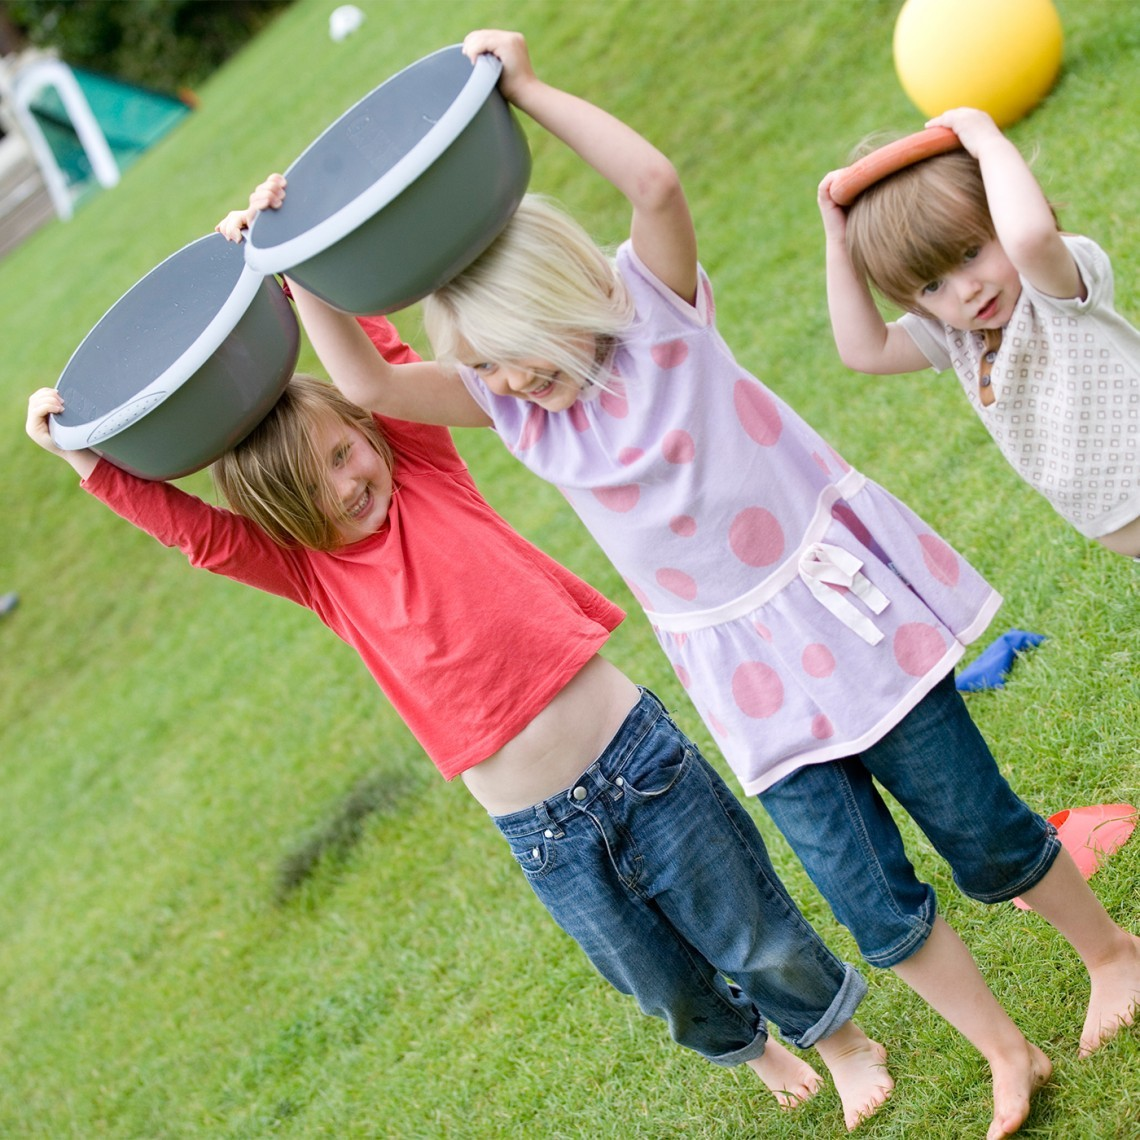 Children taking part in an event at Moonfleet Manor in Dorset